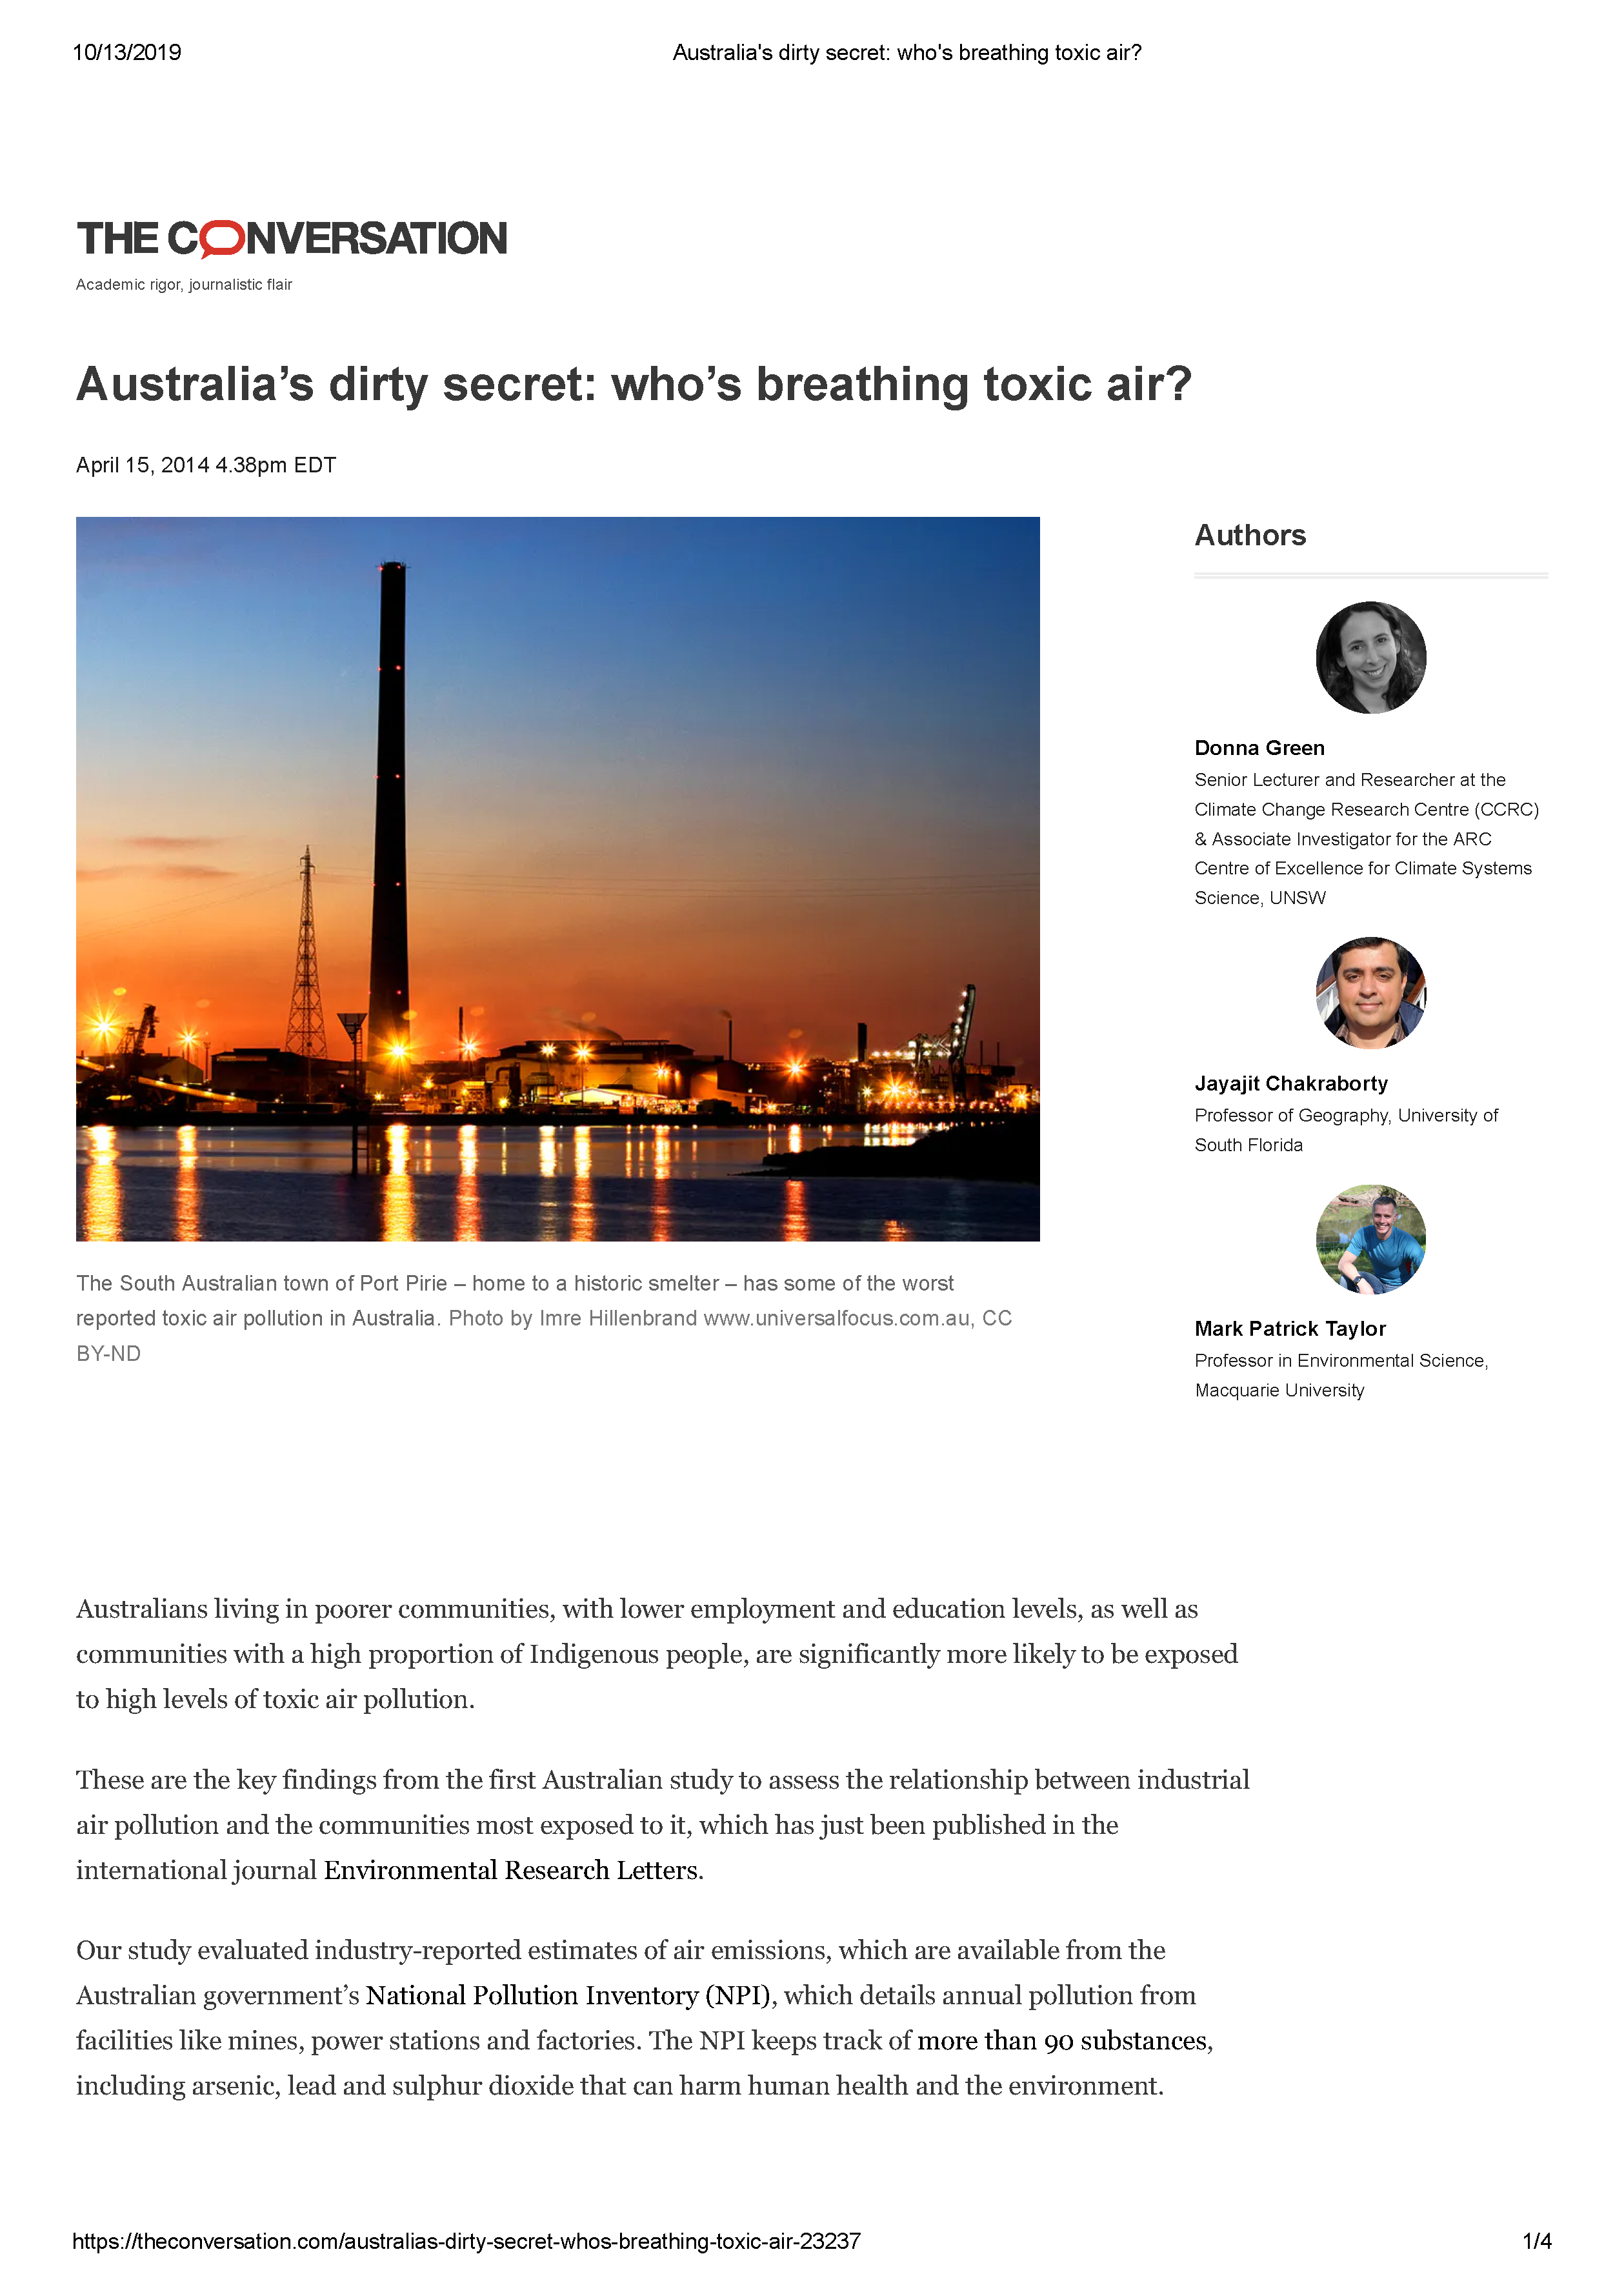 Australia's dirty secret_ who's breathing toxic air__Page_1